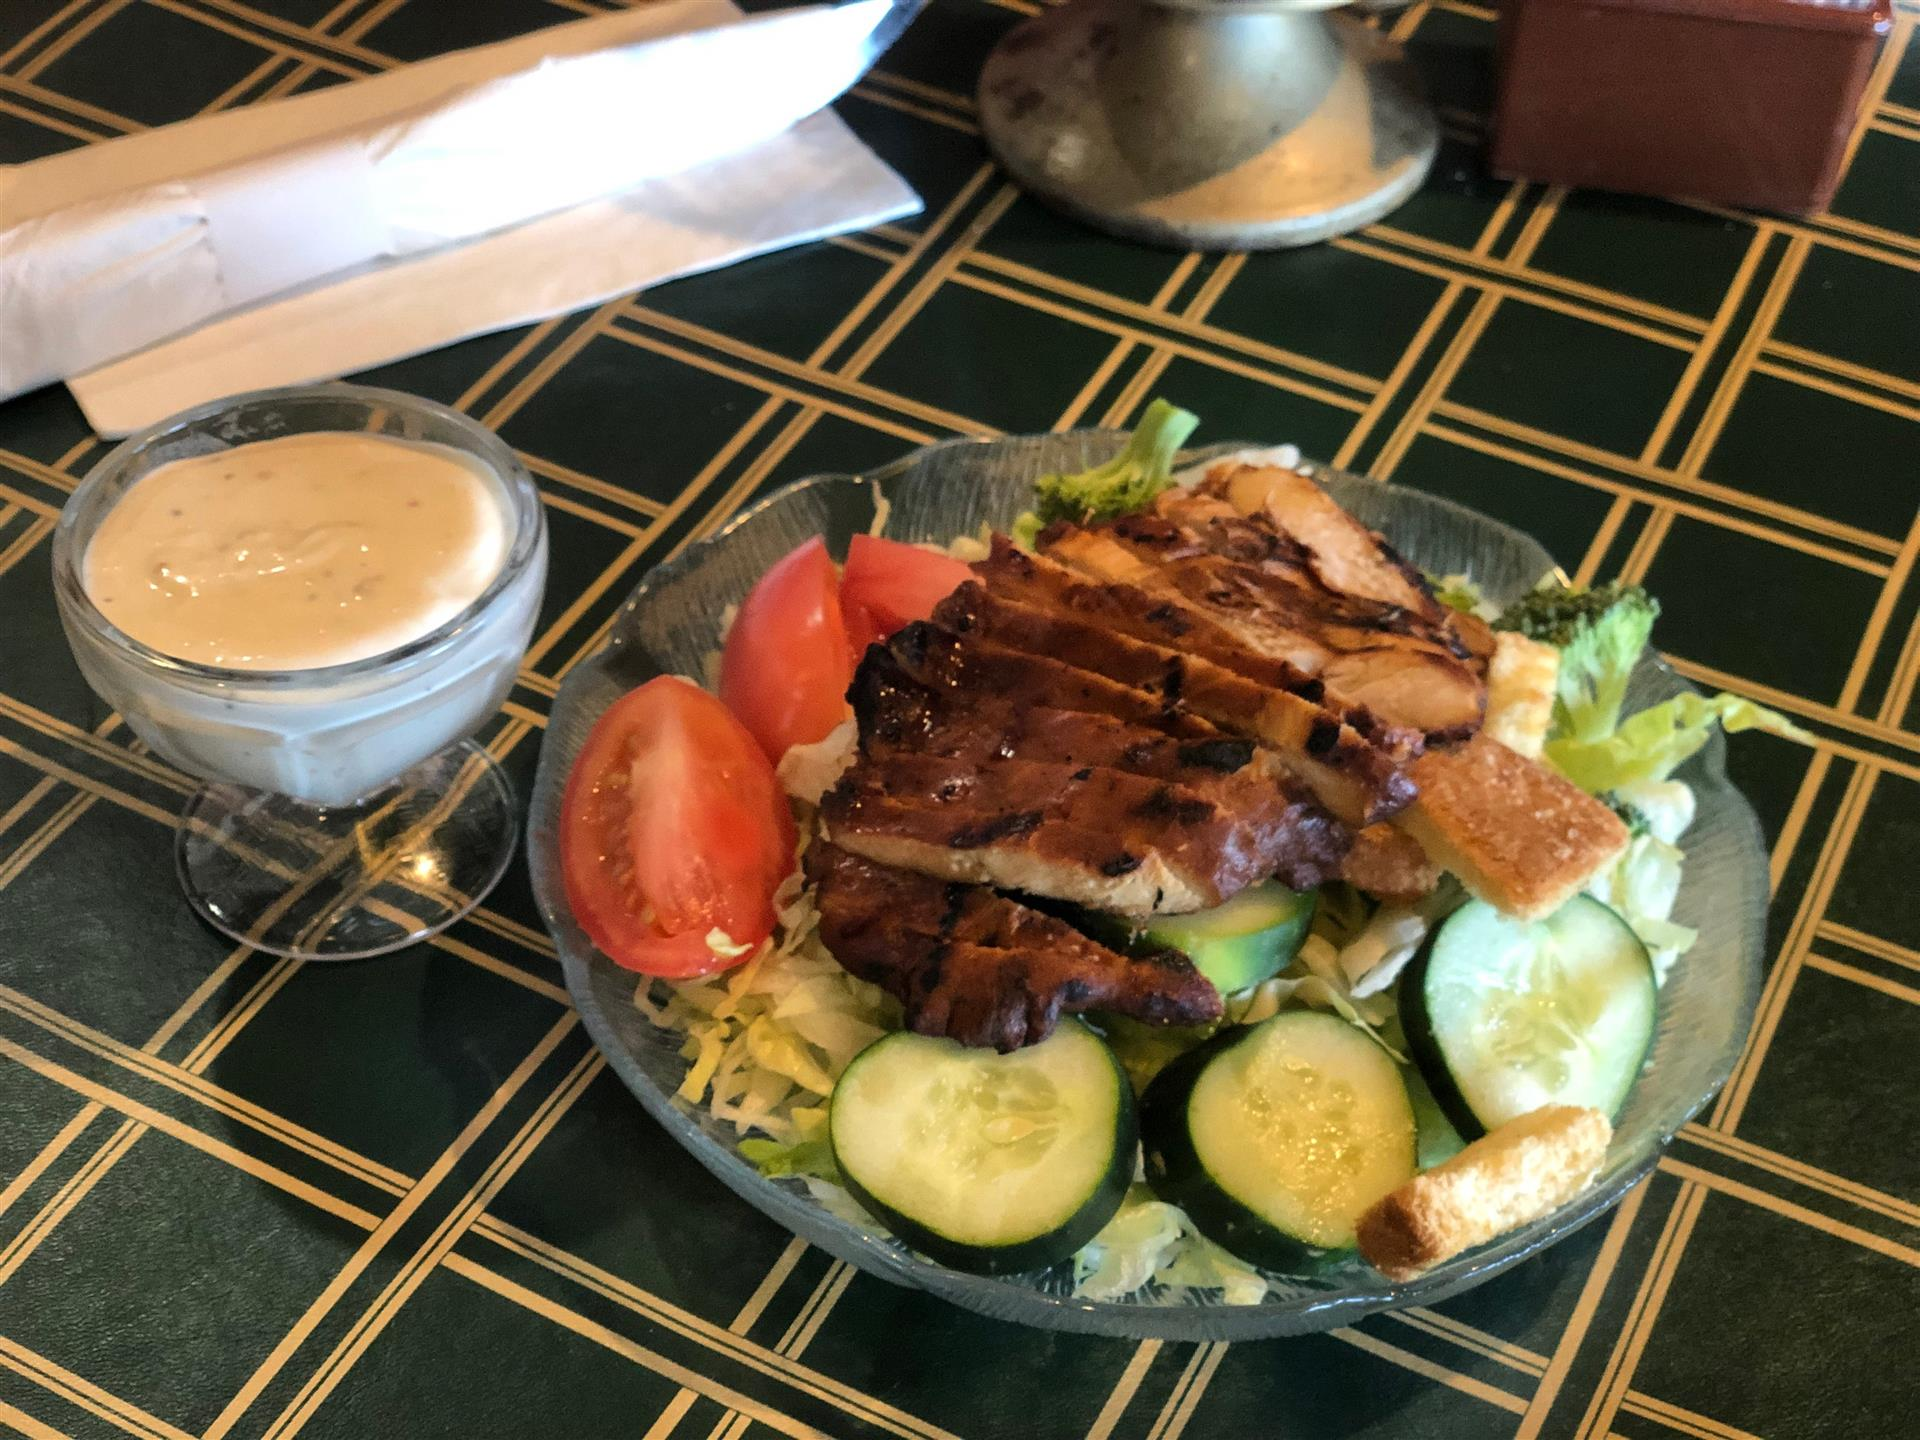 House salad topped with grilled chicken. Dressing on the side.